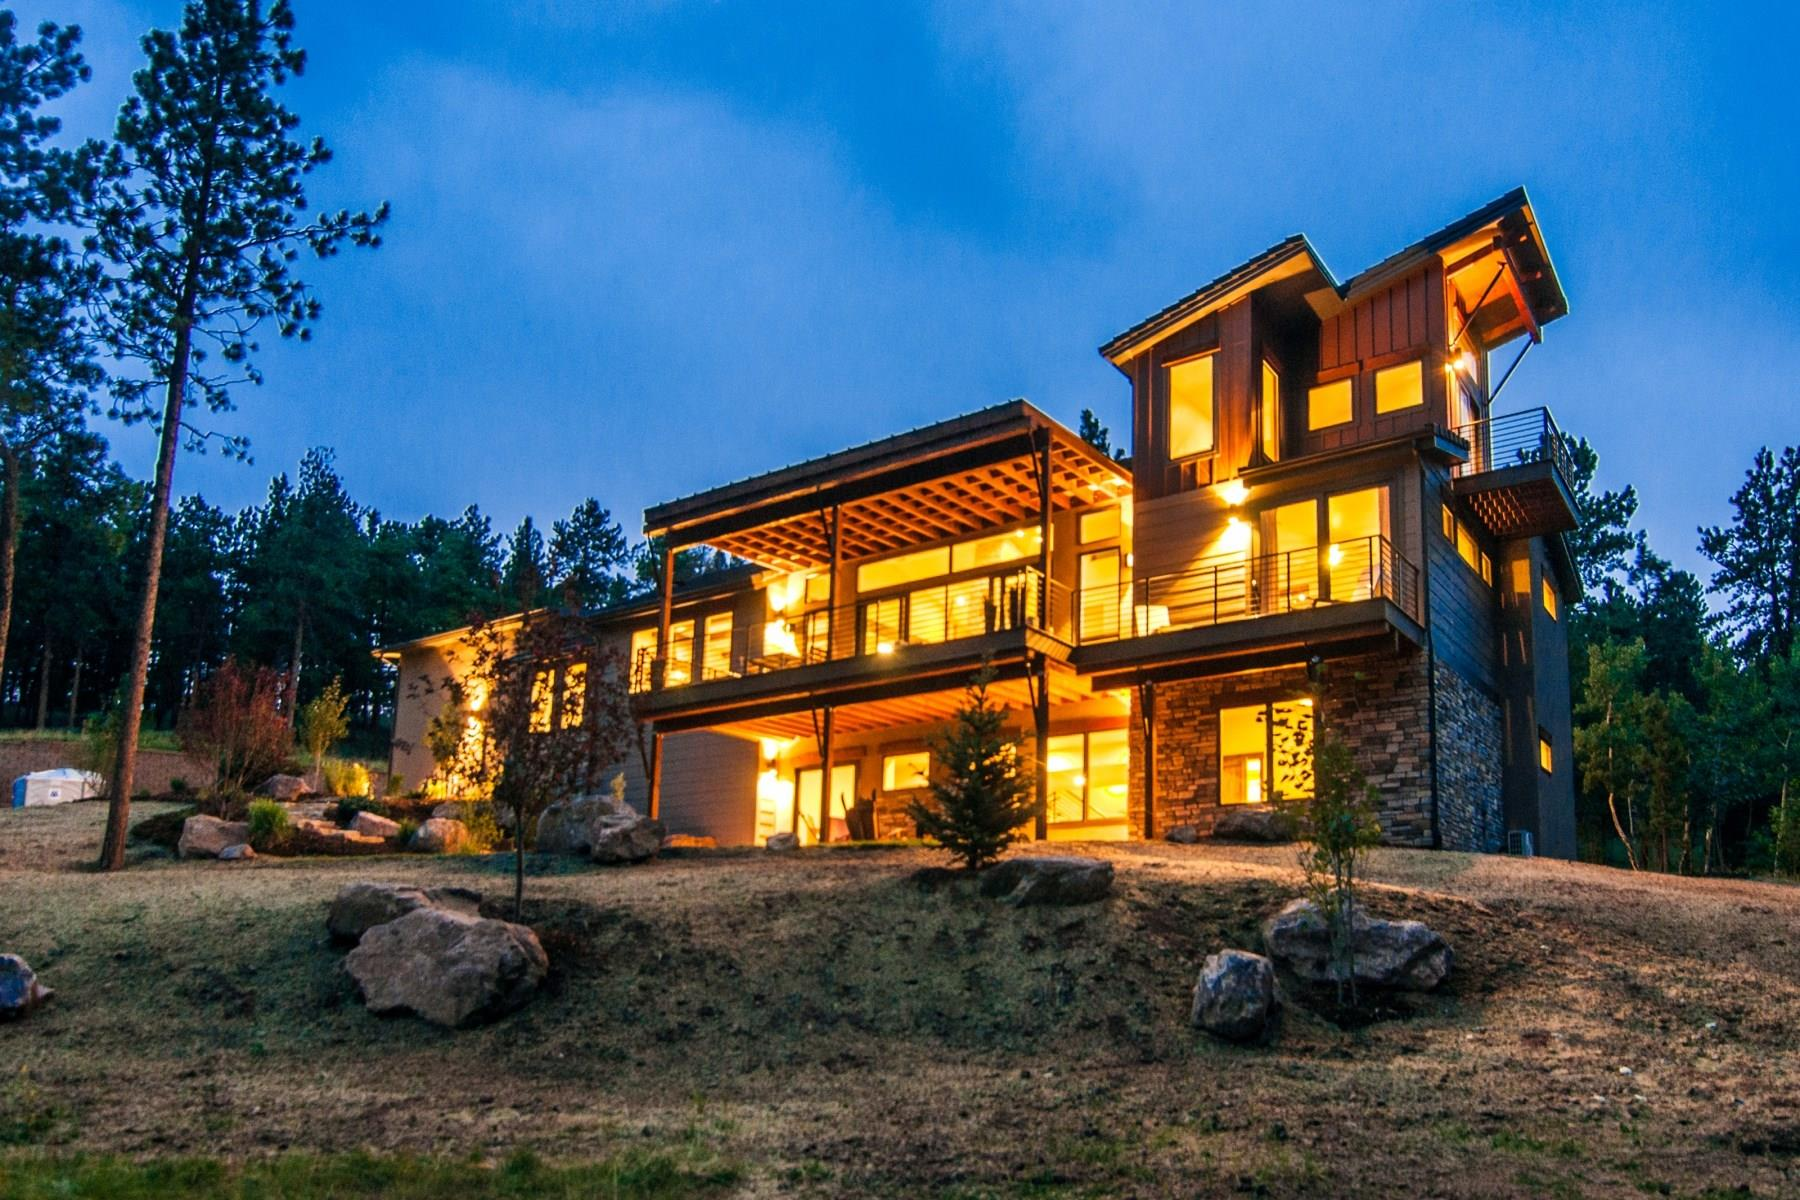 Single Family Home for Active at 739 Overlook Ridge Pt Colorado Springs, Colorado 80906 United States